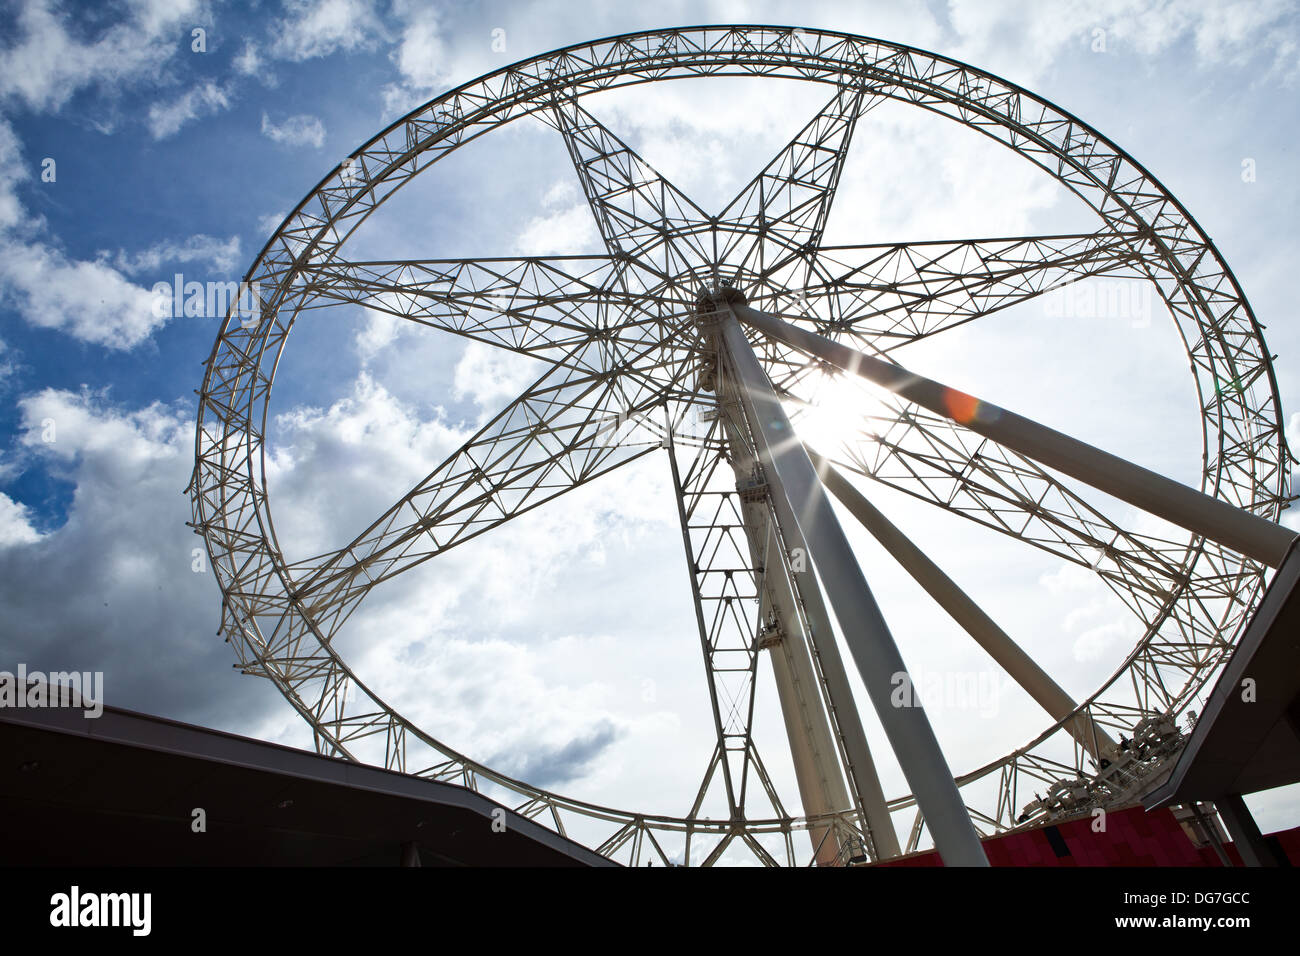 Southern Star wheel under repairs in Docklands Melbourne - Stock Image